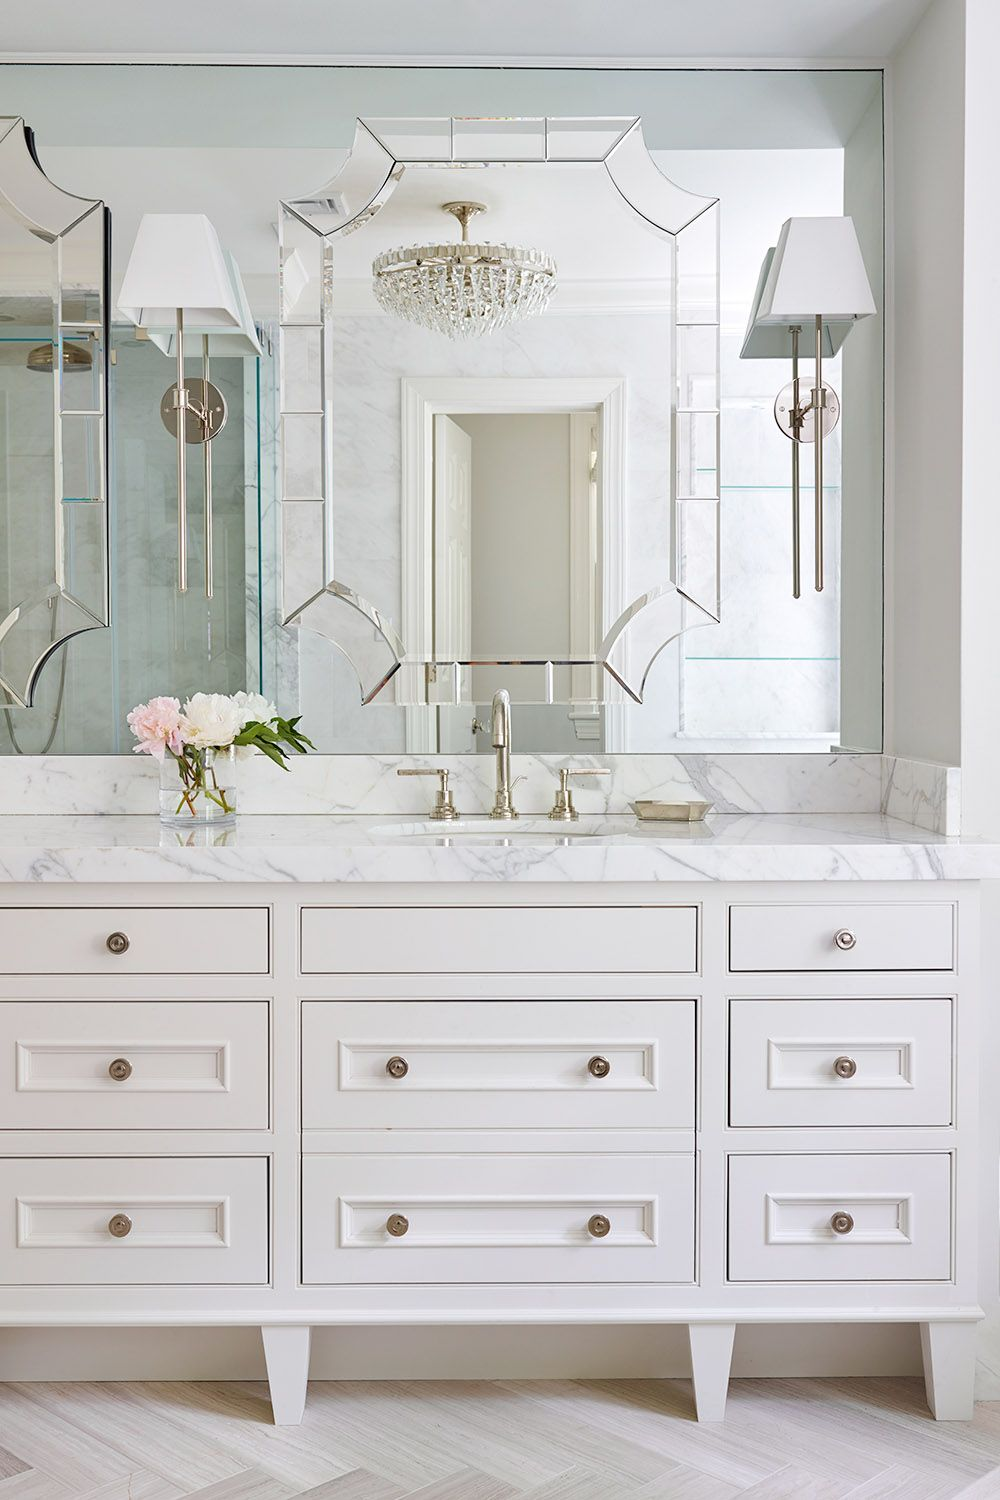 Dream Master Bathroom With Custom Designed Furniture Style Vanity, Thick  Marble Countertop And Mirror On